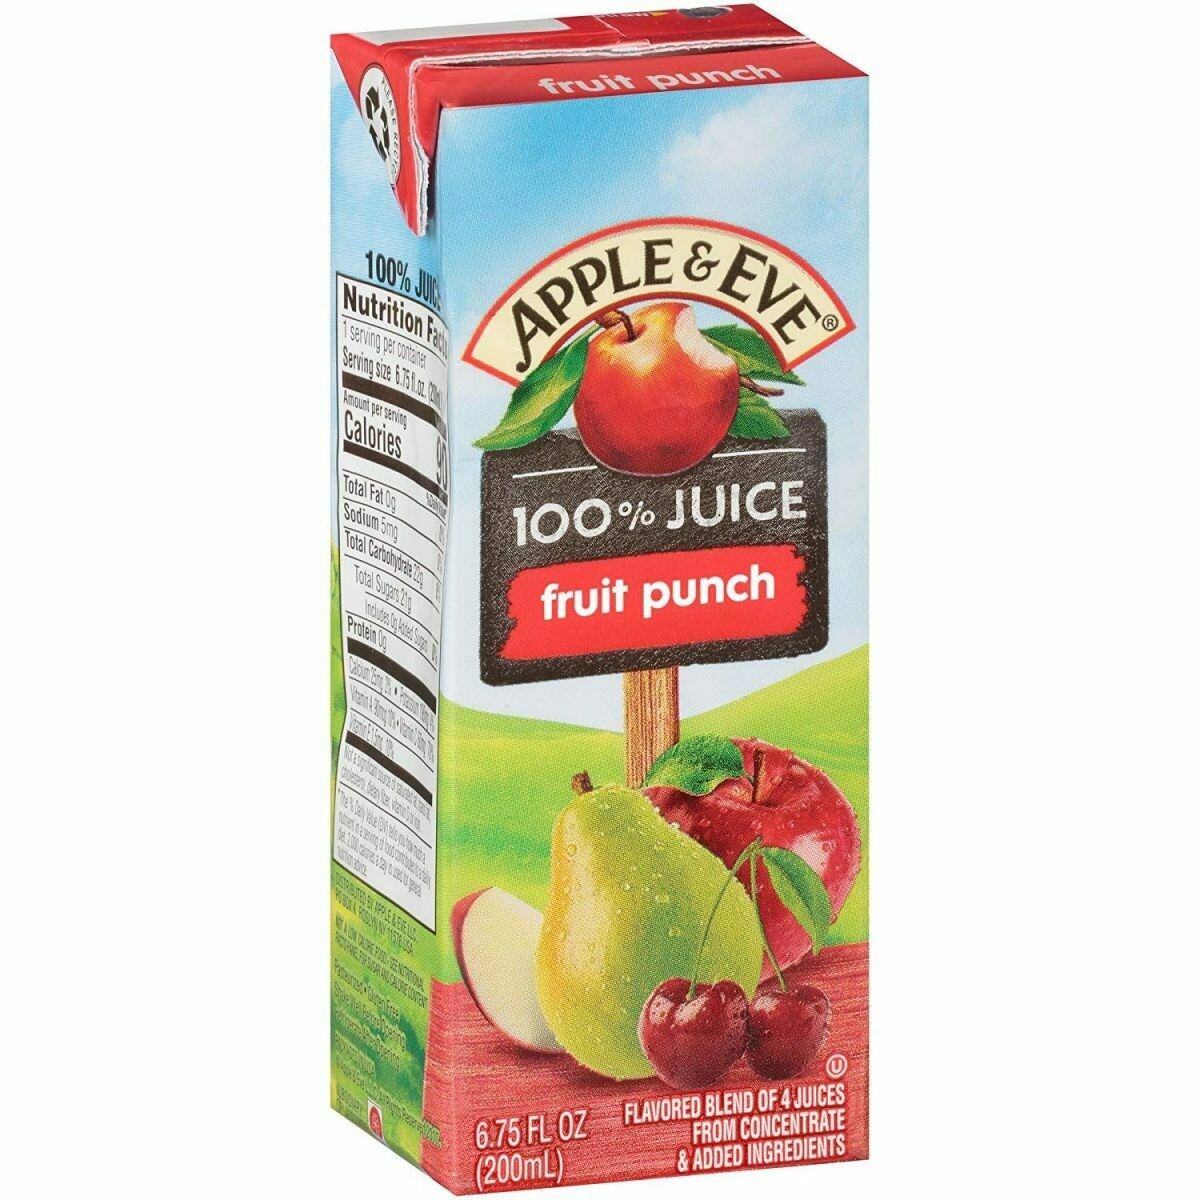 Jugo de Manzana Pnche de Frutas - Apple Juice Fruit Punch 200ml